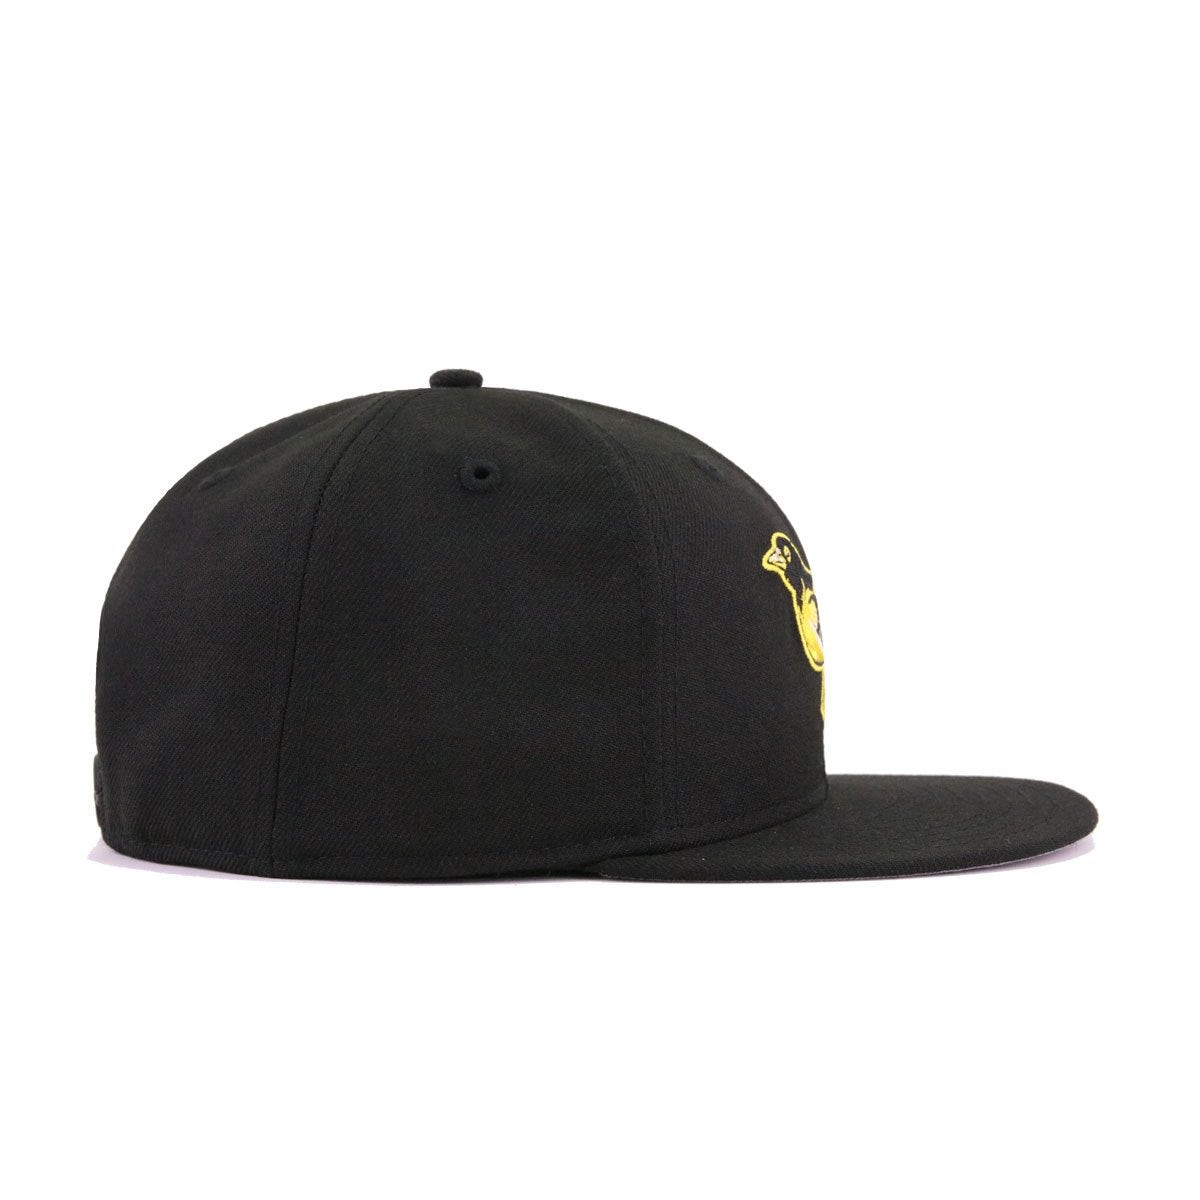 Baltimore Orioles Black Ombre Gold New Era 9Fifty Snapback